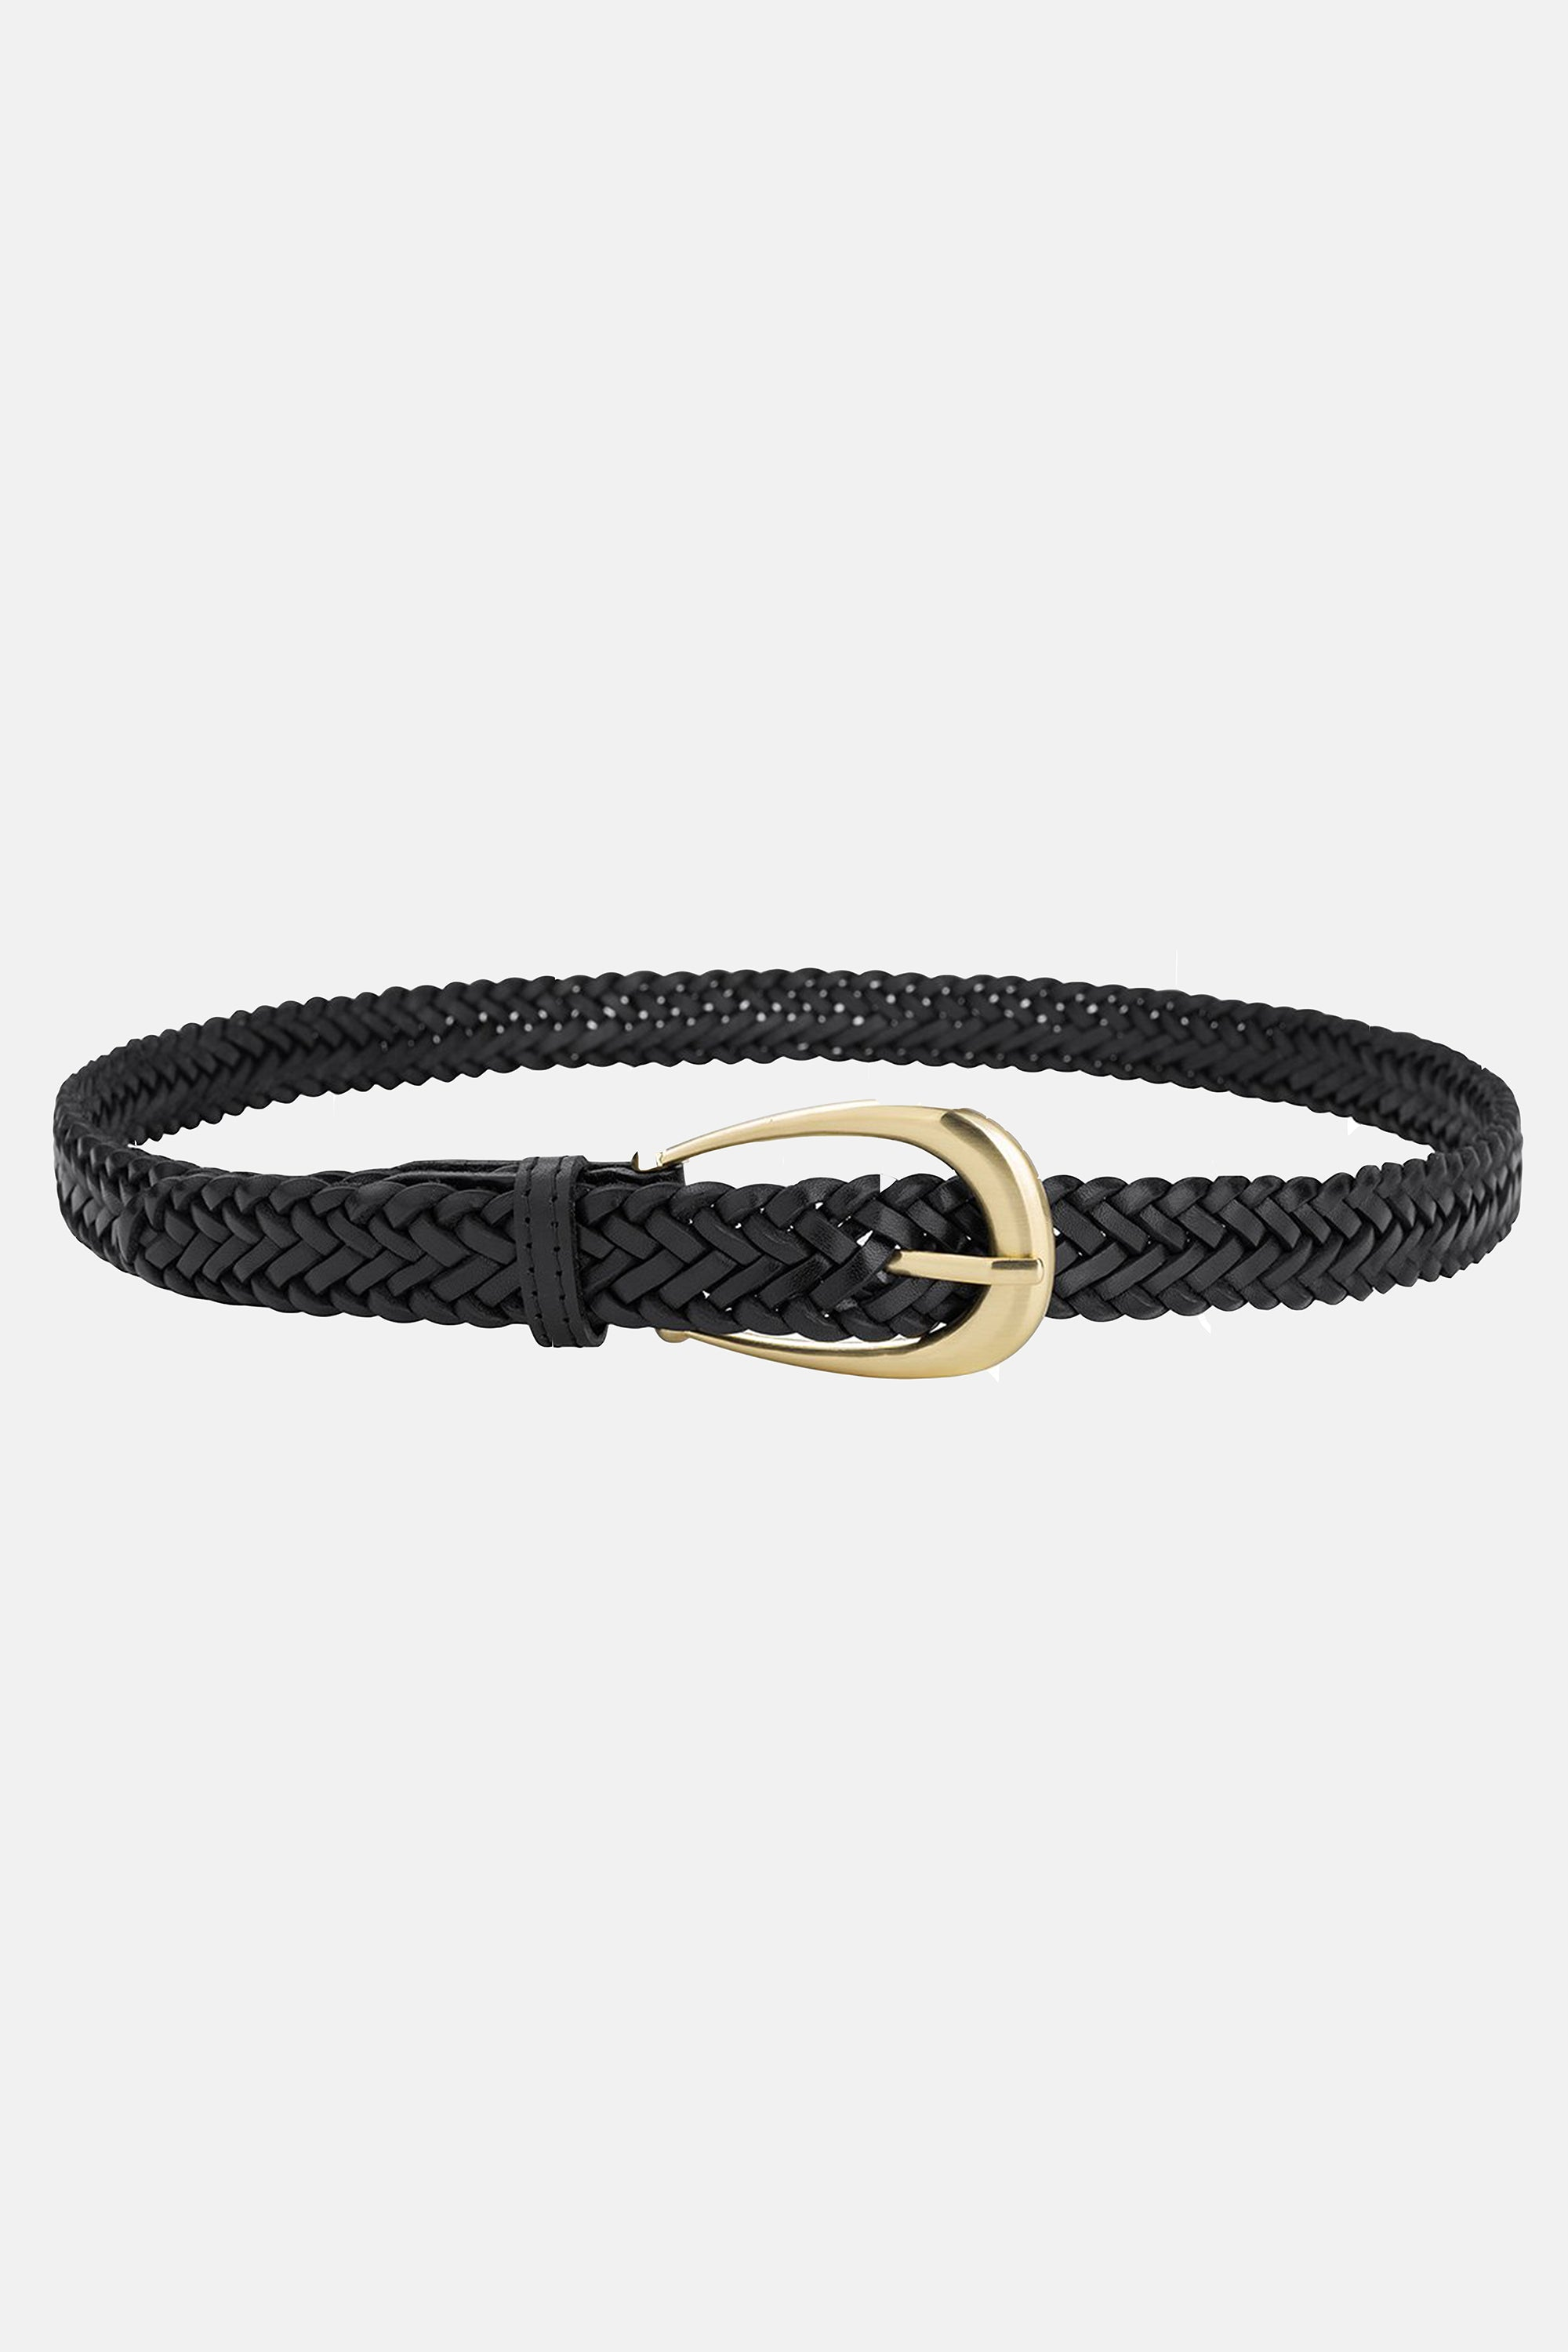 The Annely Woven Belt - Vintage Black